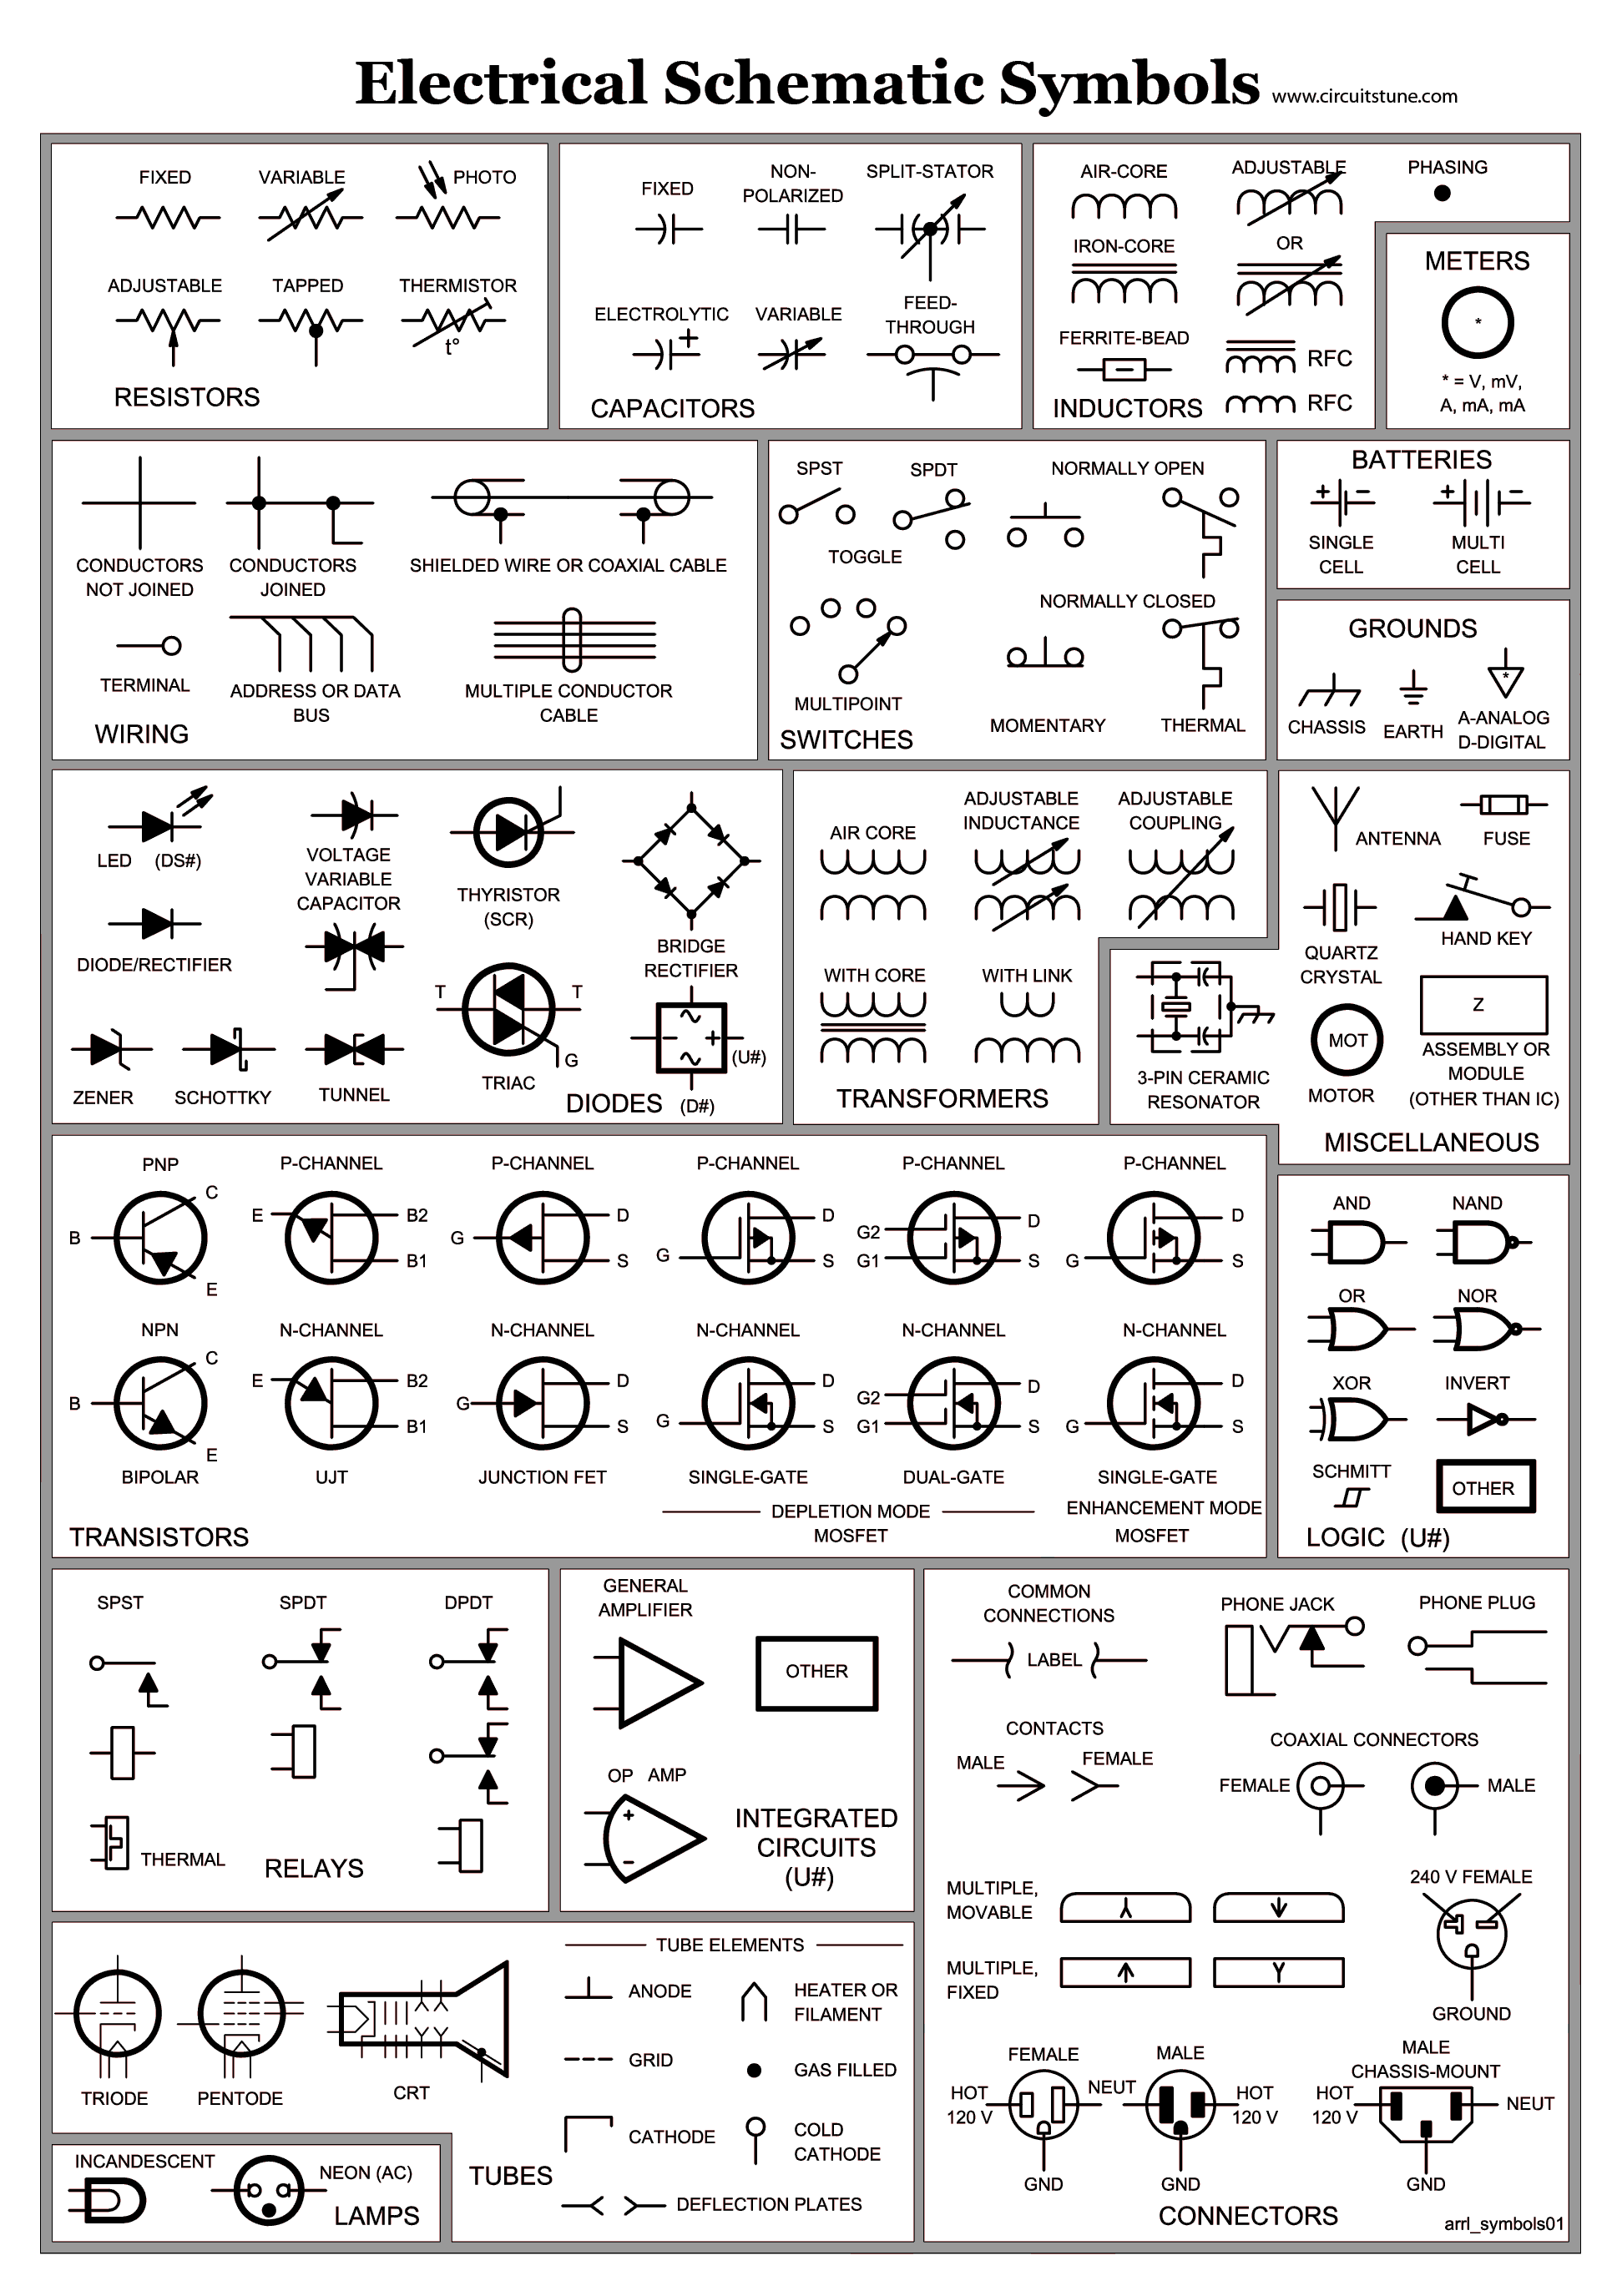 Wiring Diagram Capacitor Symbol : Electrical schematic symbols wire diagram